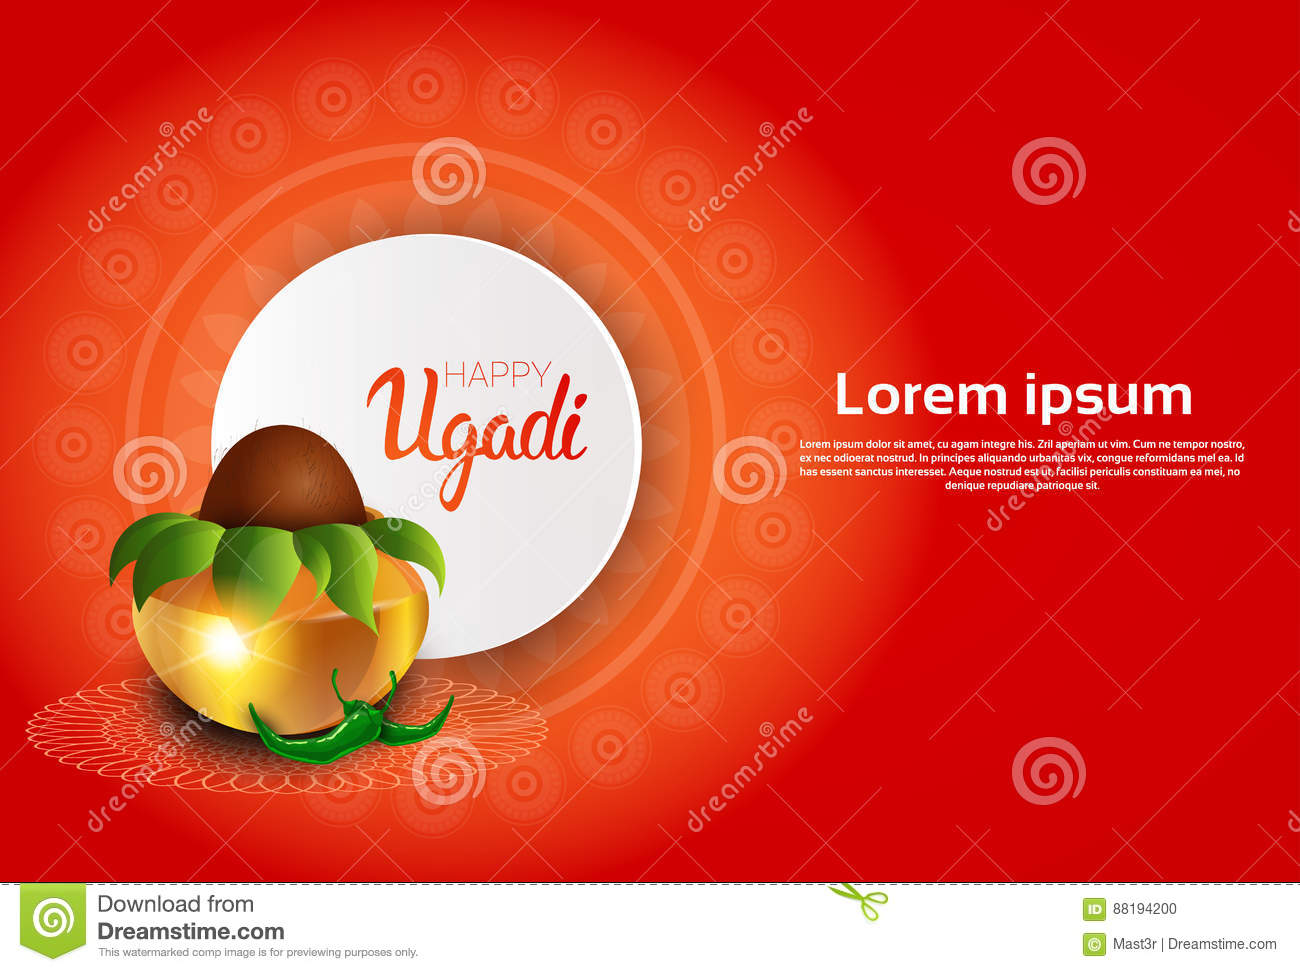 Happy ugadi and gudi padwa hindu new year greeting card holiday pot download happy ugadi and gudi padwa hindu new year greeting card holiday pot with coconut stock m4hsunfo